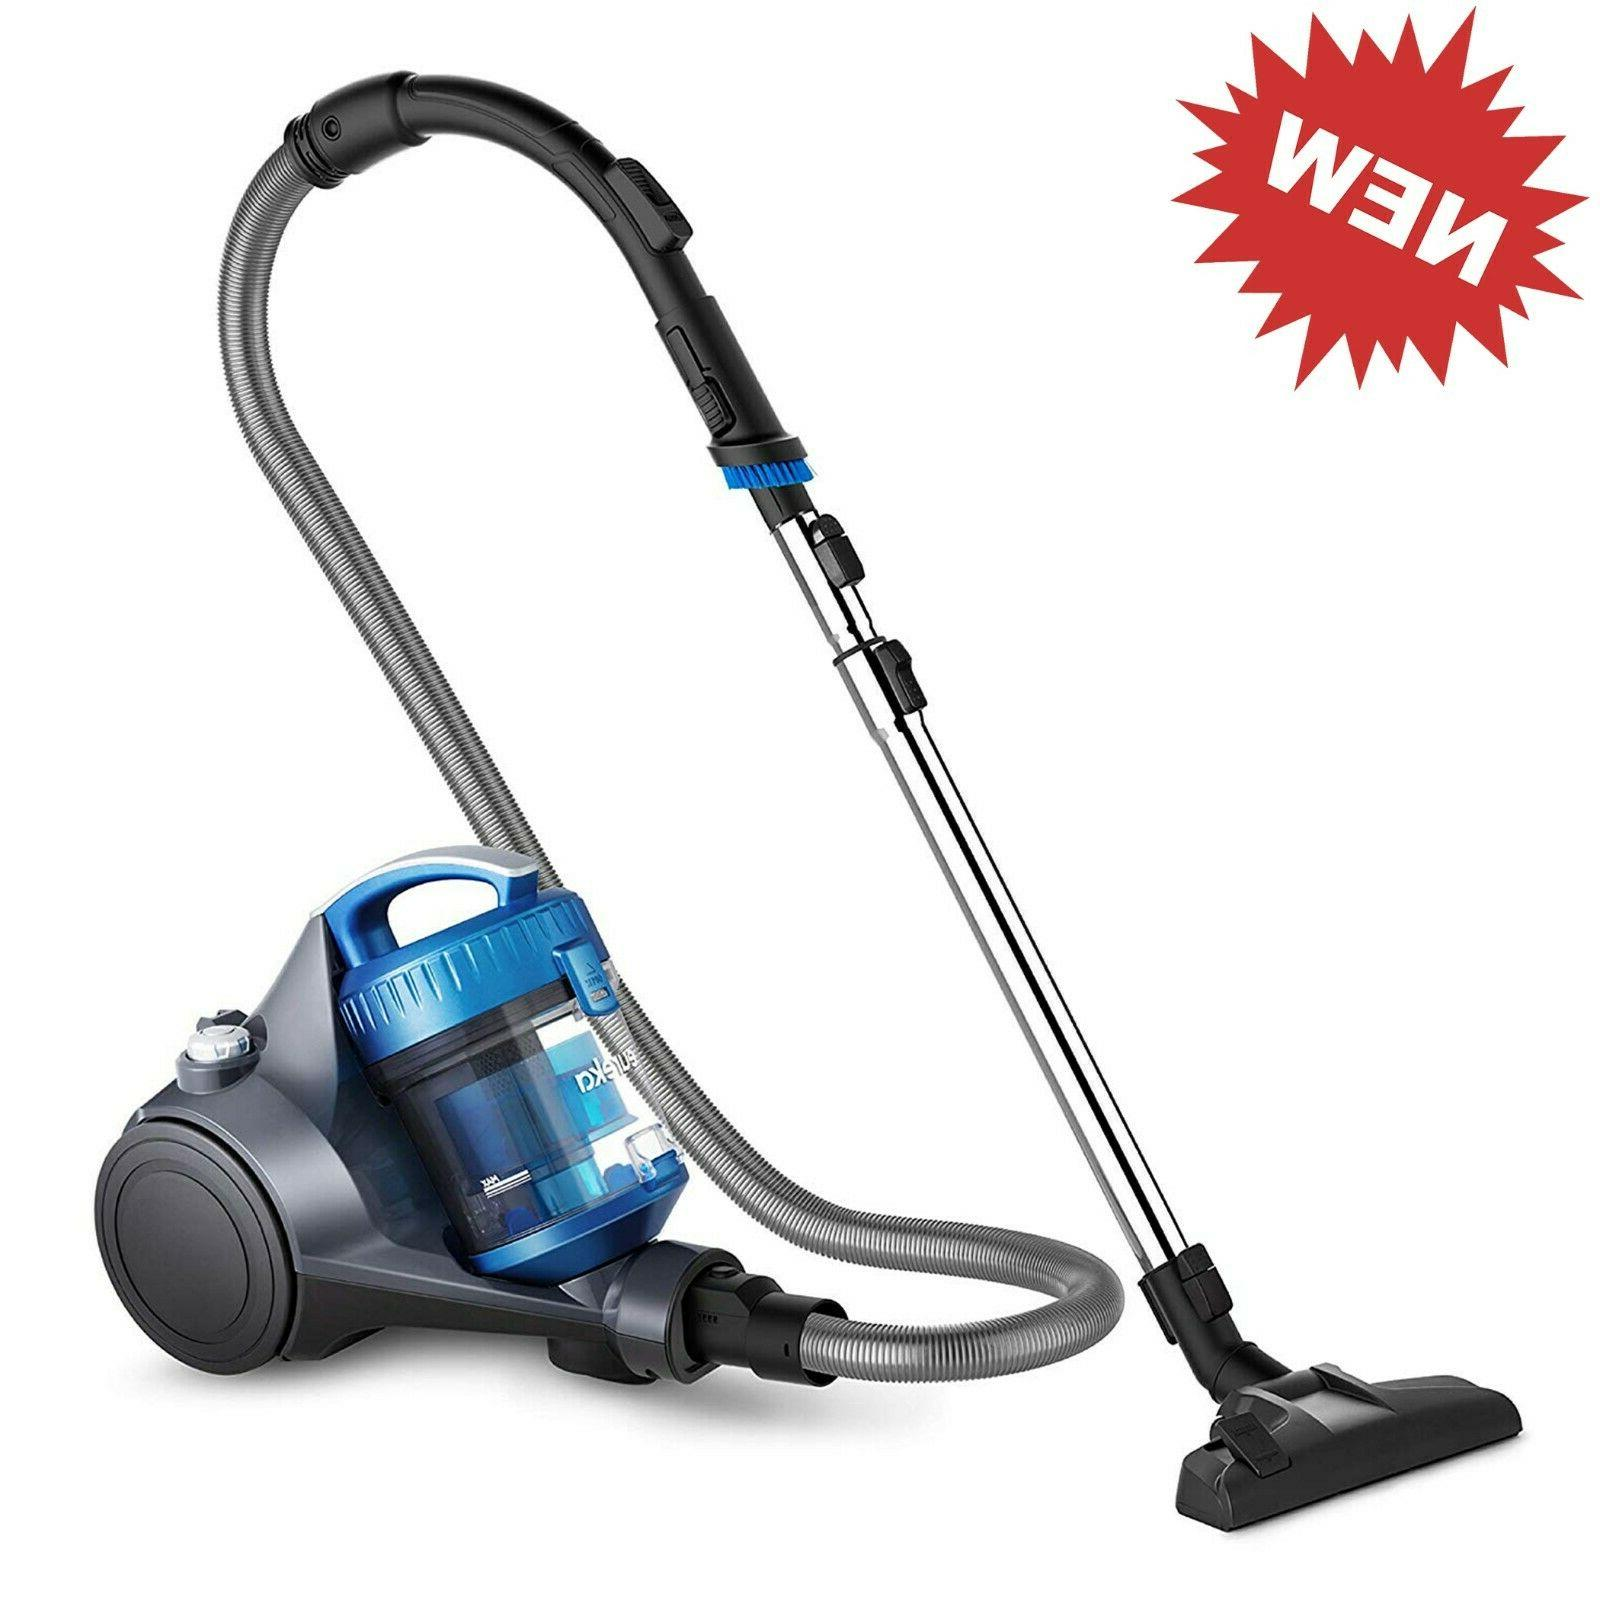 nen110a whirlwind bagless canister vacuum cleaner lightweigh